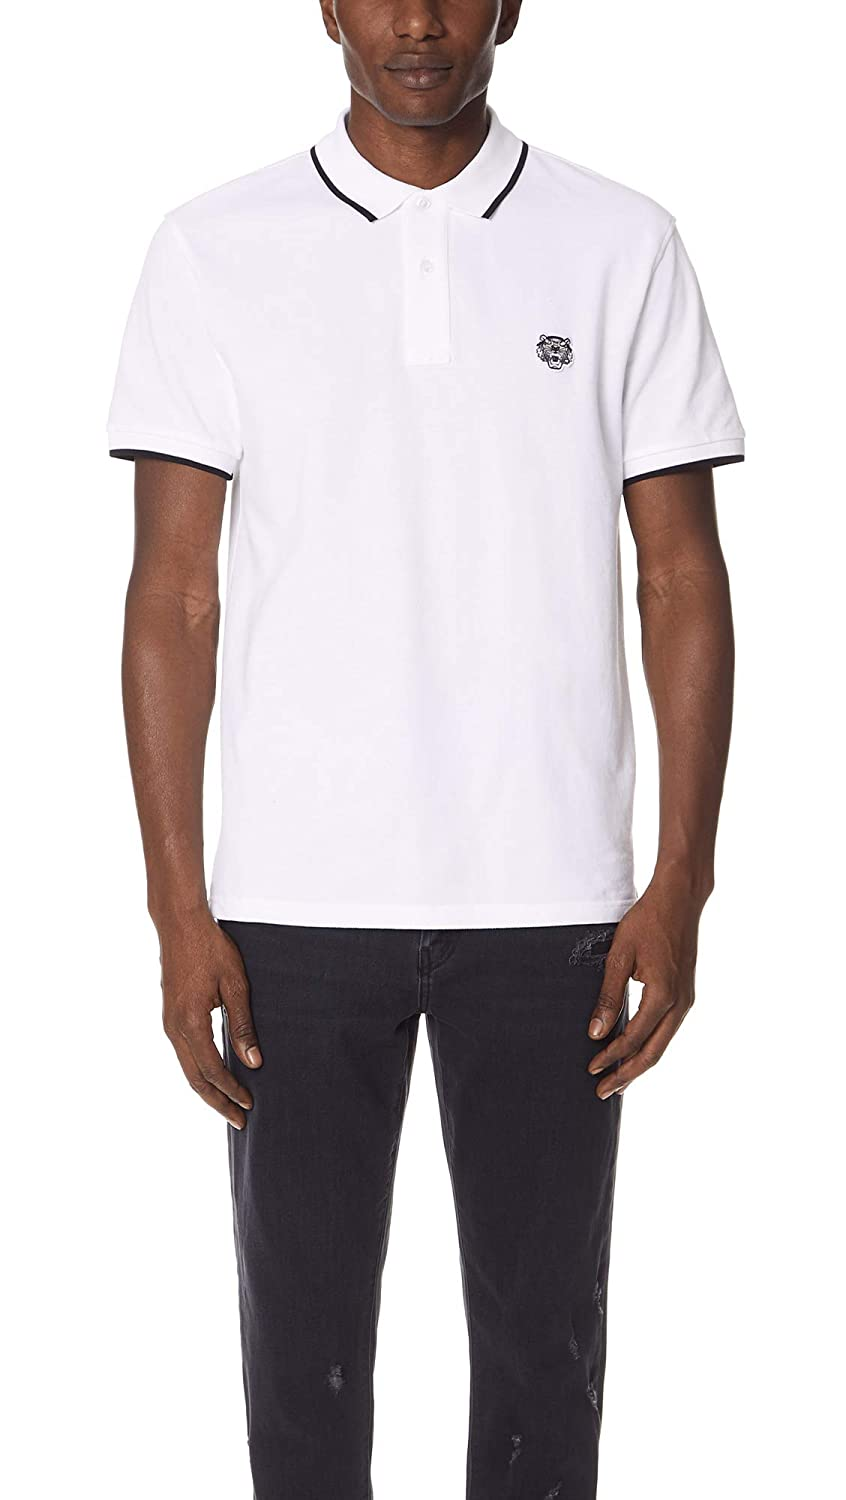 Kenzo Men's White Tiger Head Polo Shirt With Black Tipped